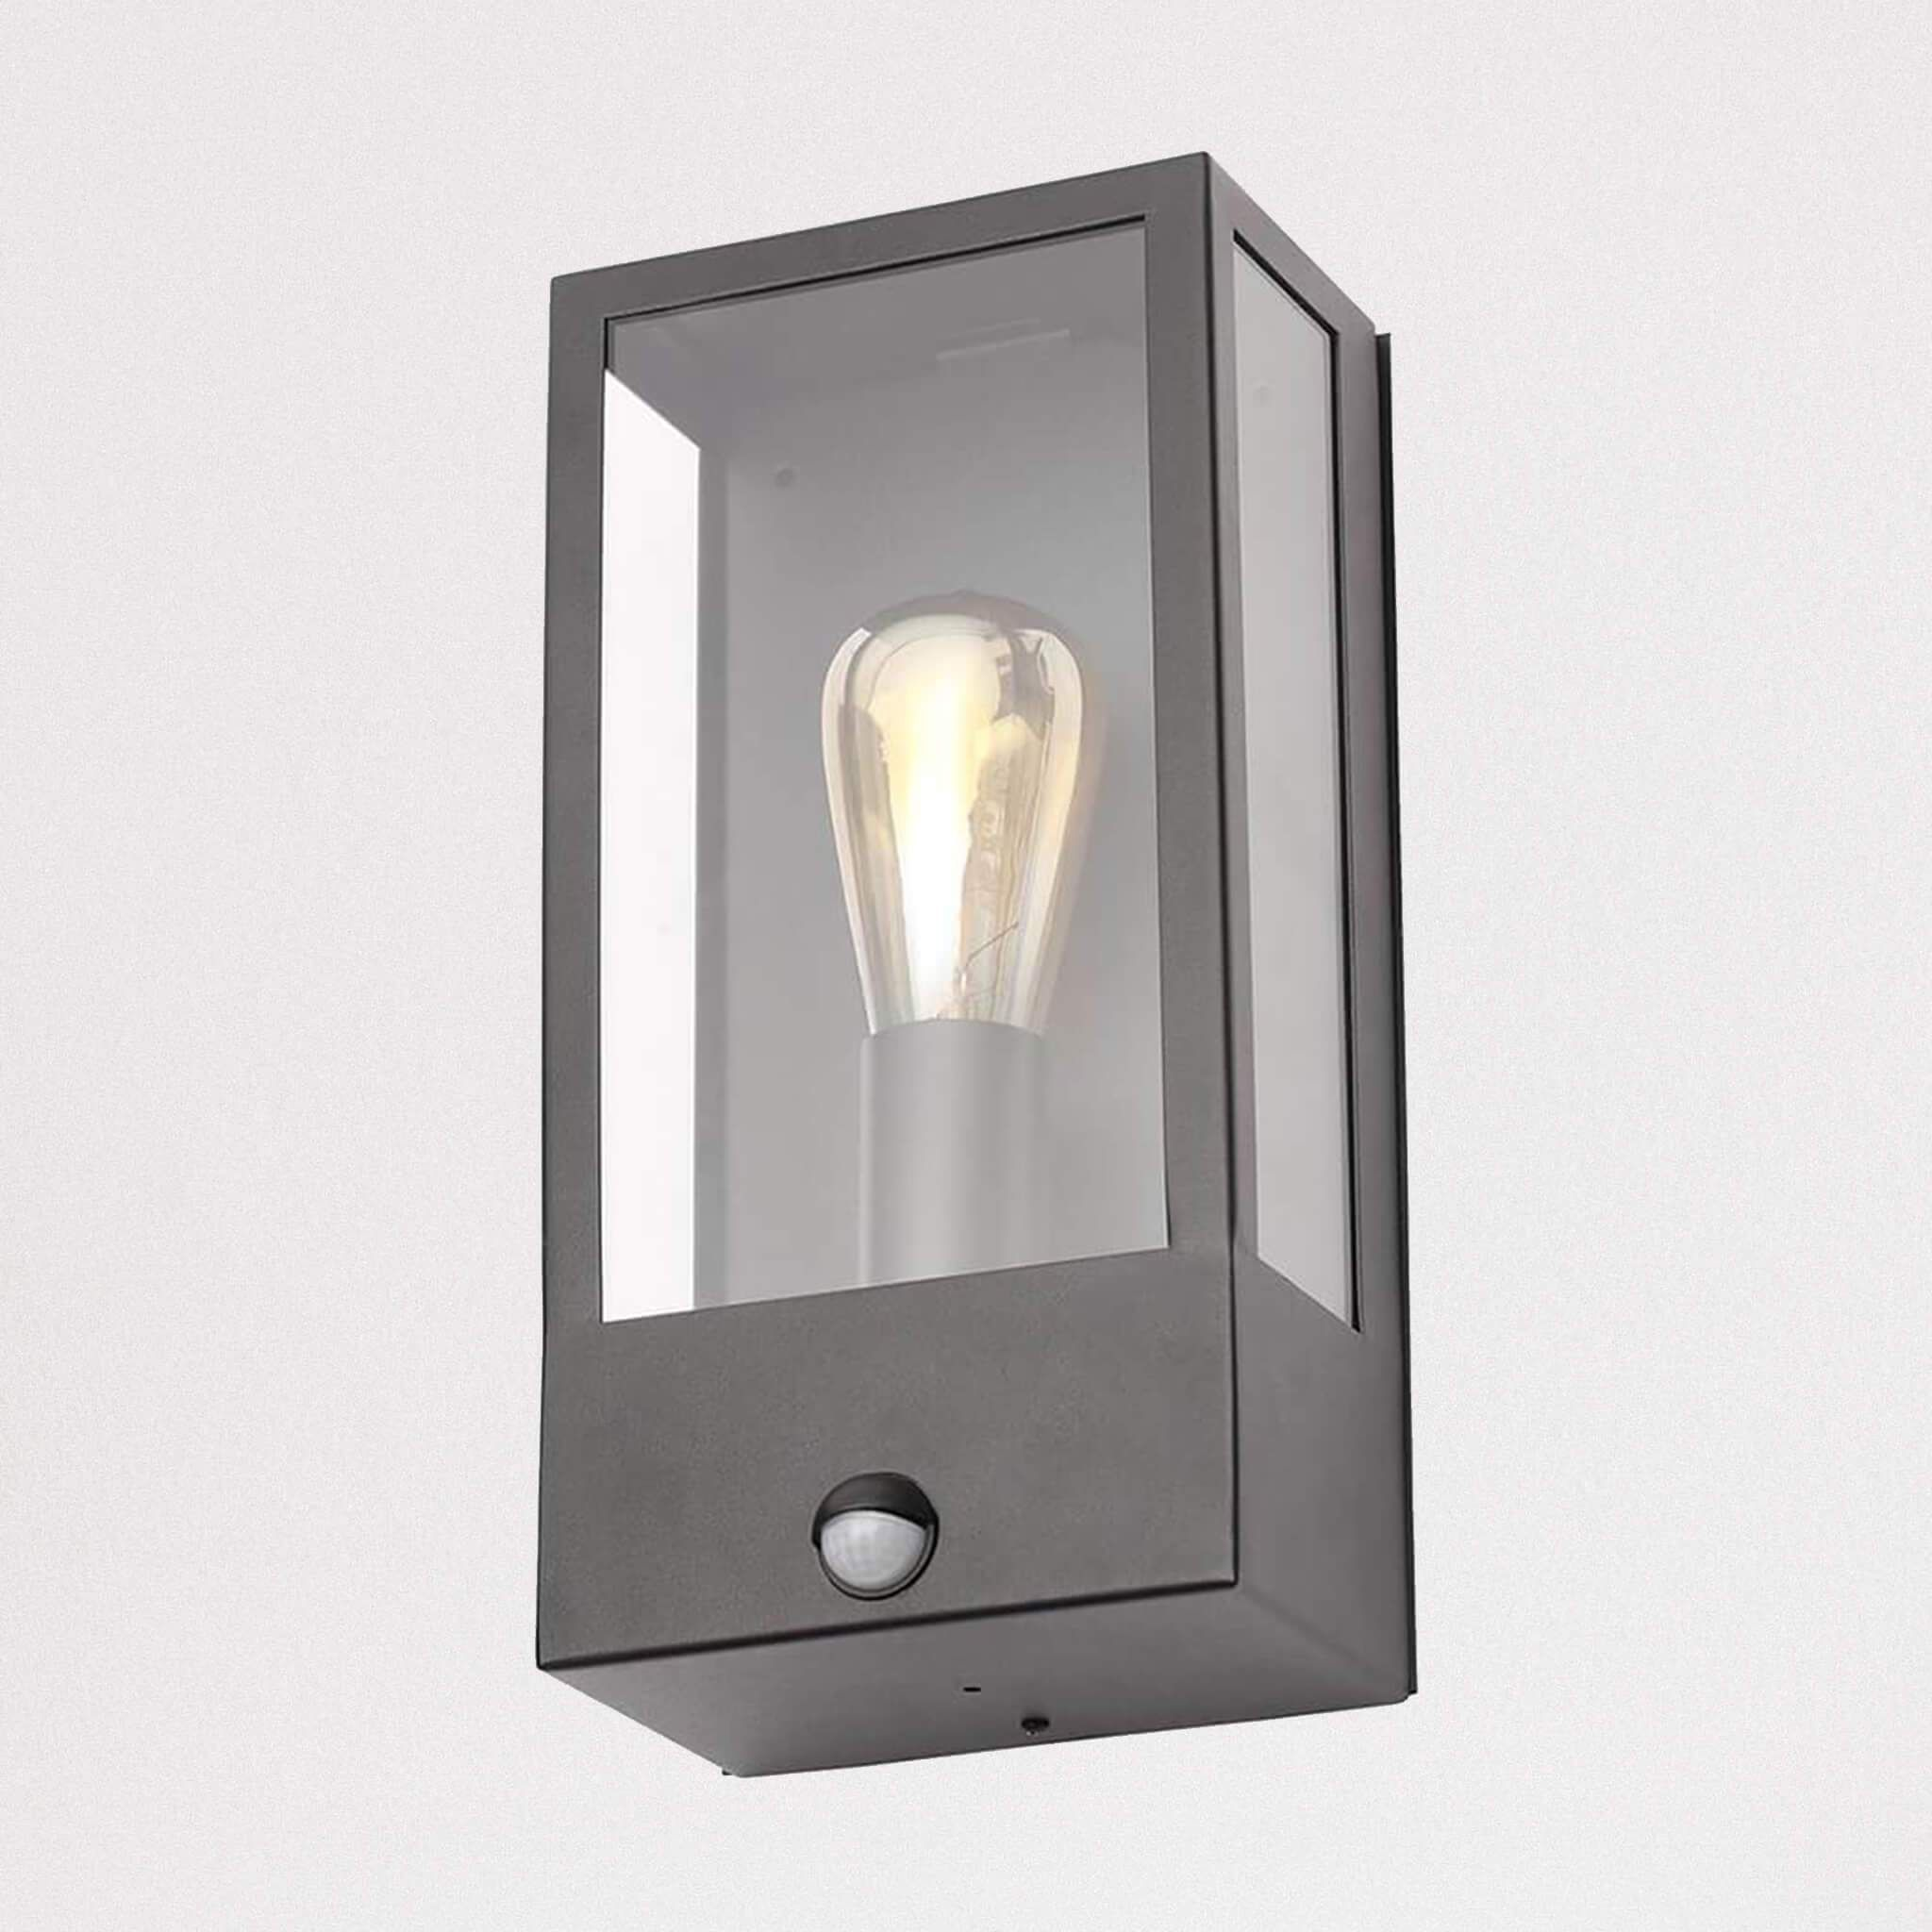 Nomad Glass Box Pir Sensor Wall Light Black Wall Lights Glass